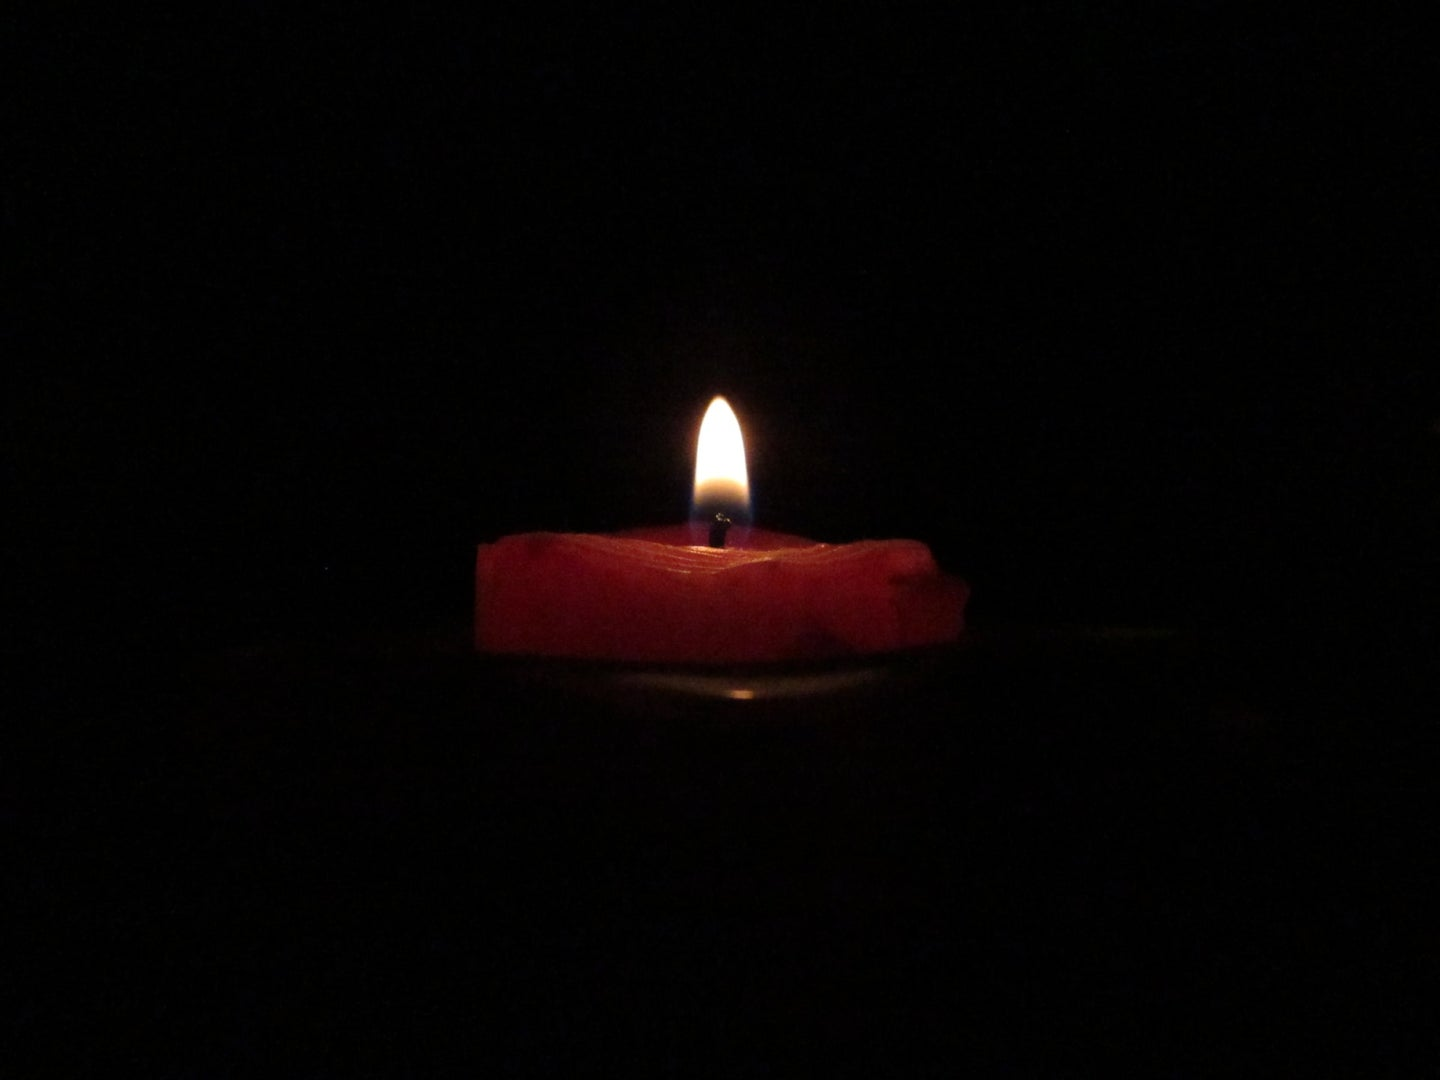 a candle in the darkness